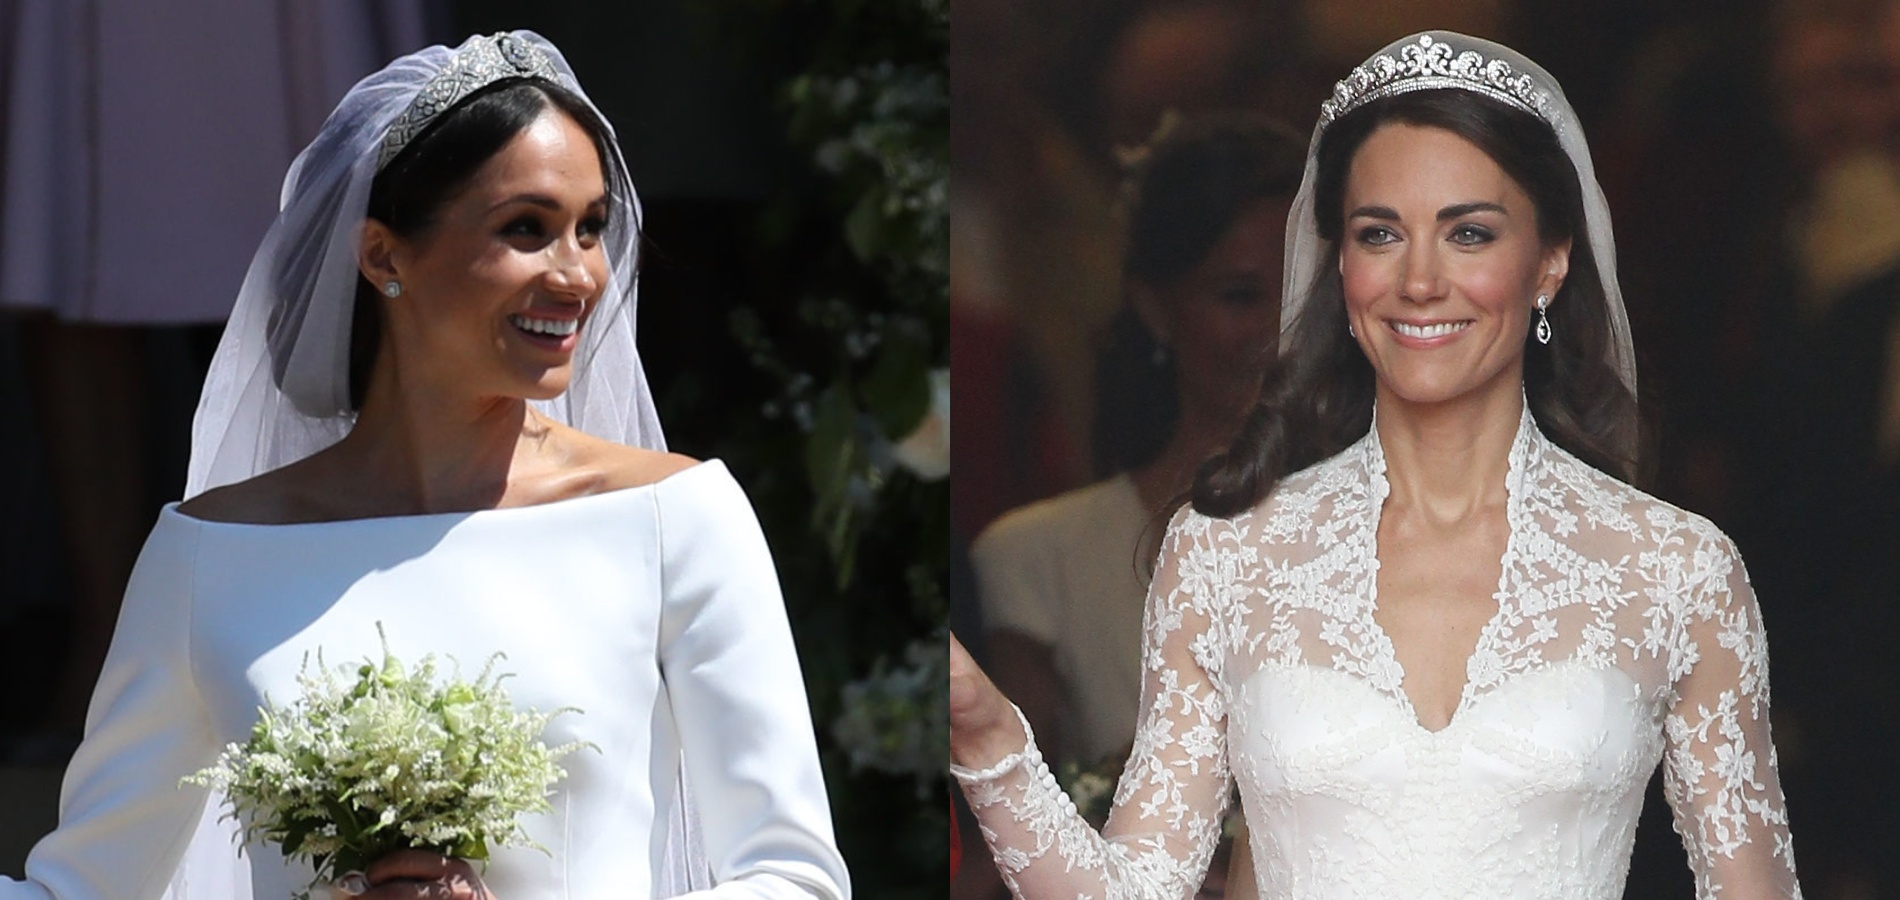 Le match des robes de mariée de Kate Middleton